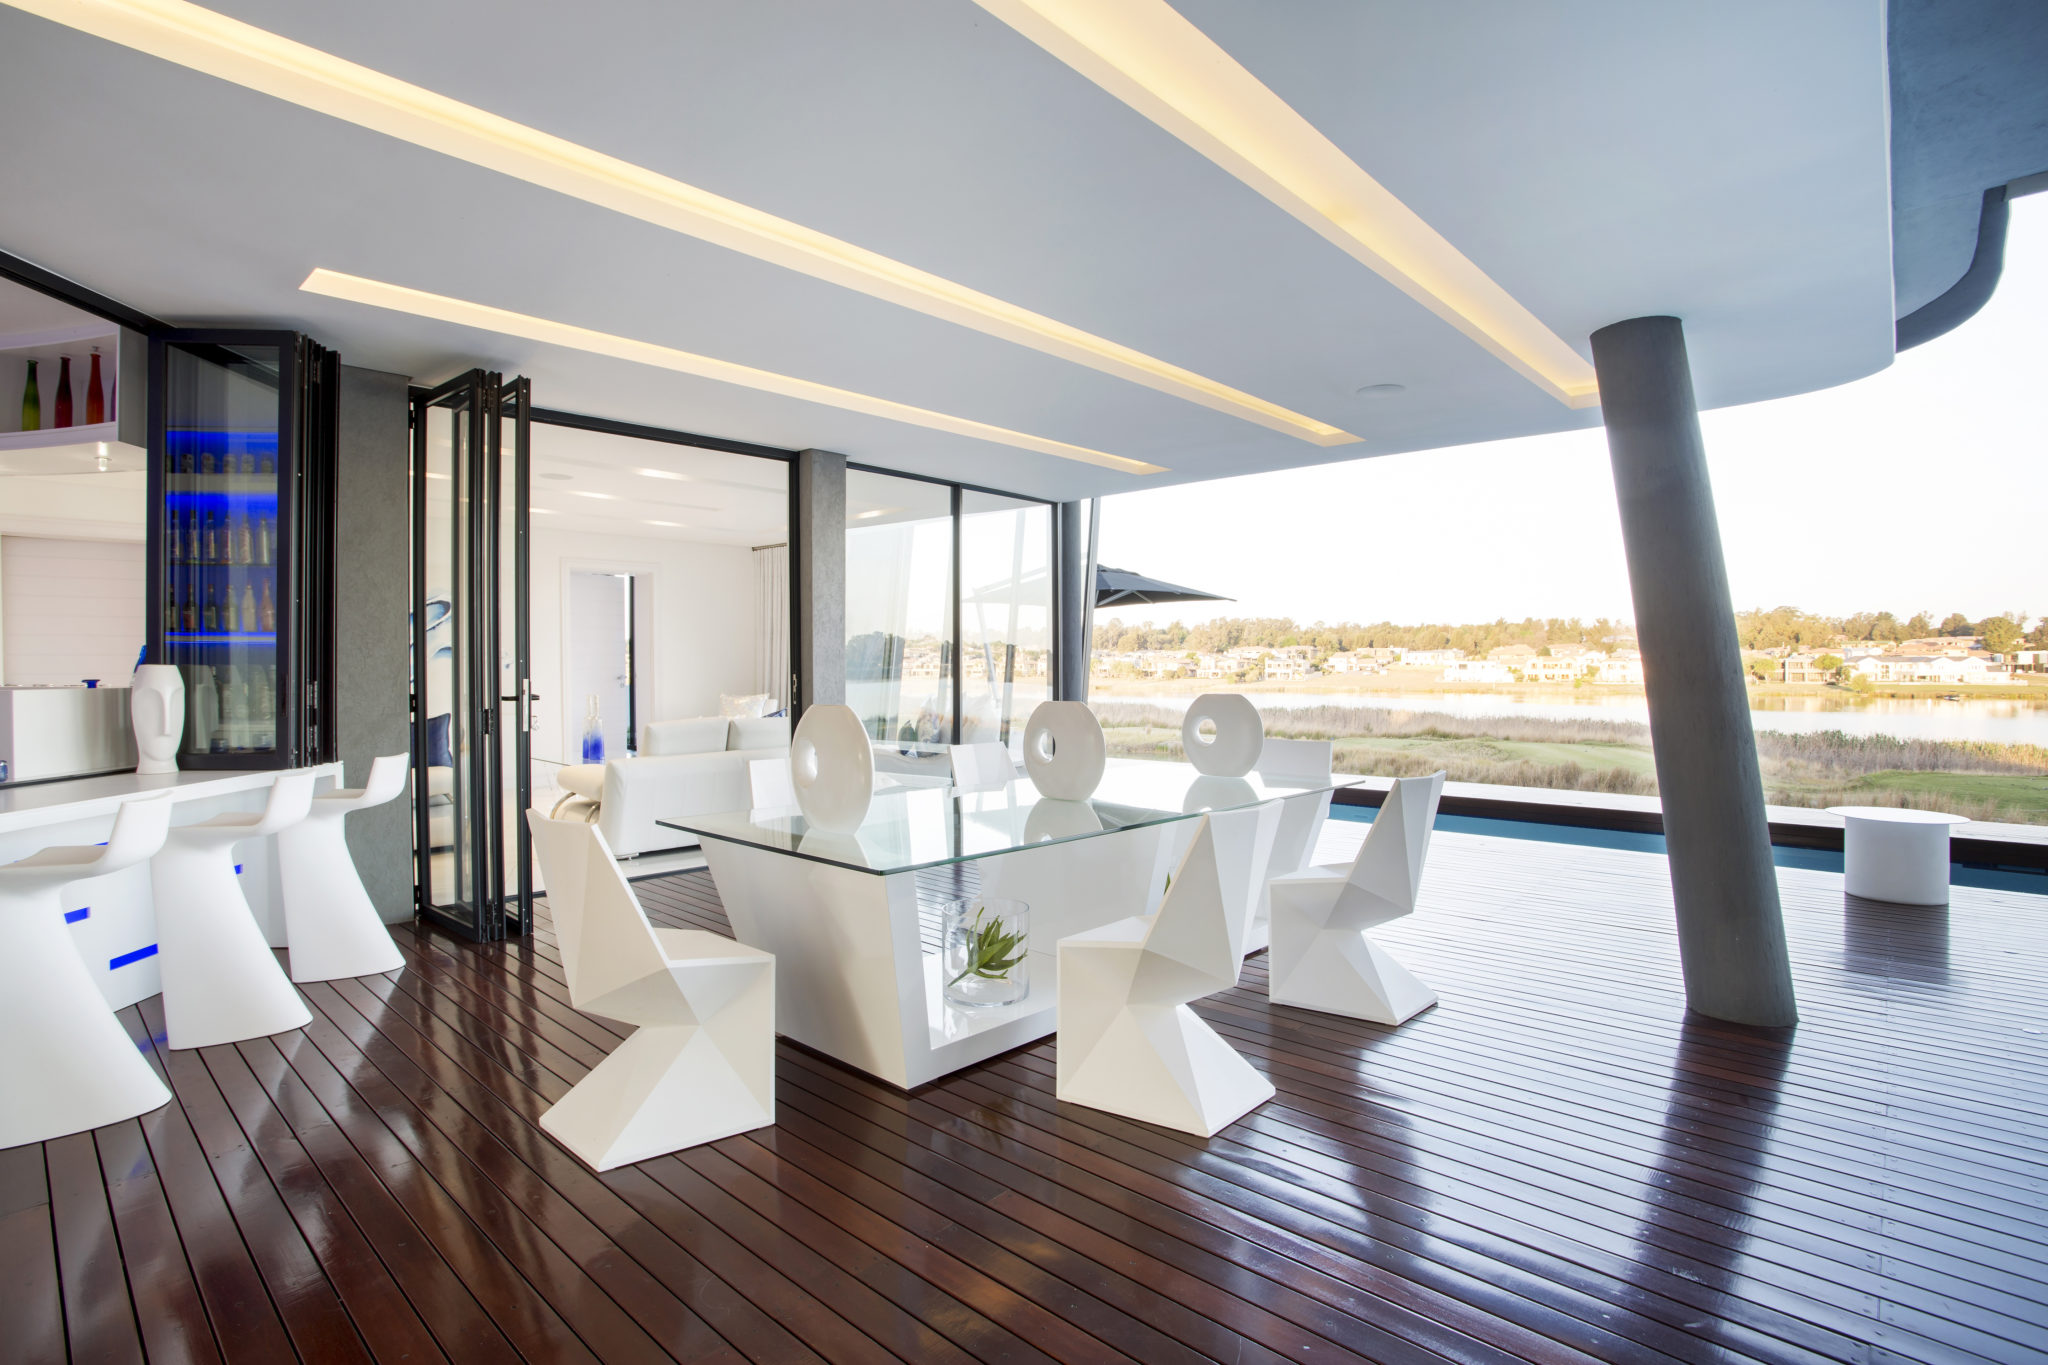 Choosing the best interior Designer in South Africa can increase the value of your home